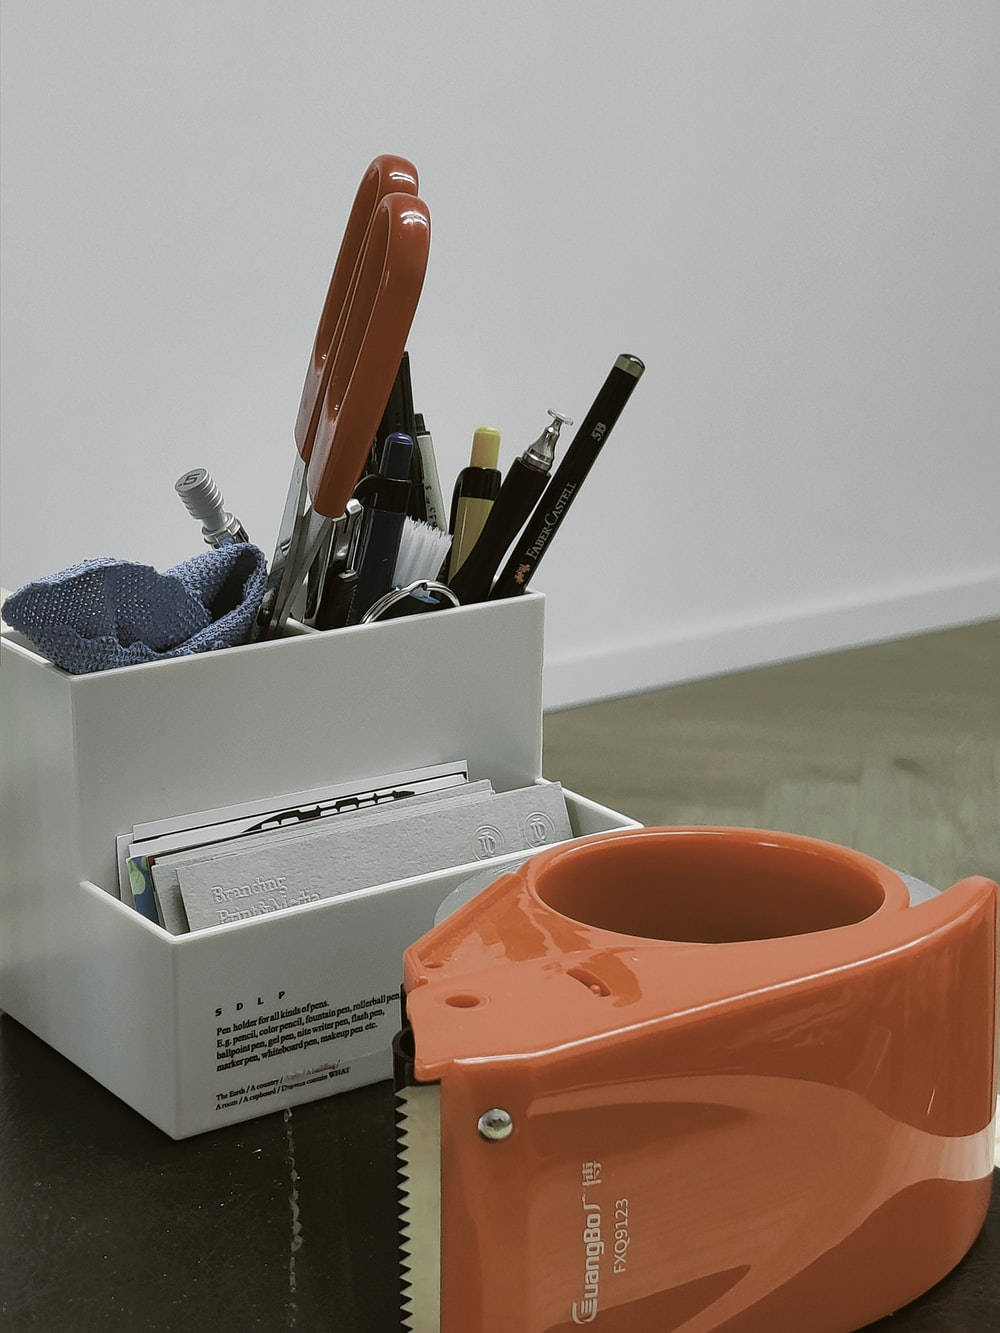 white box with utensils close-up photography